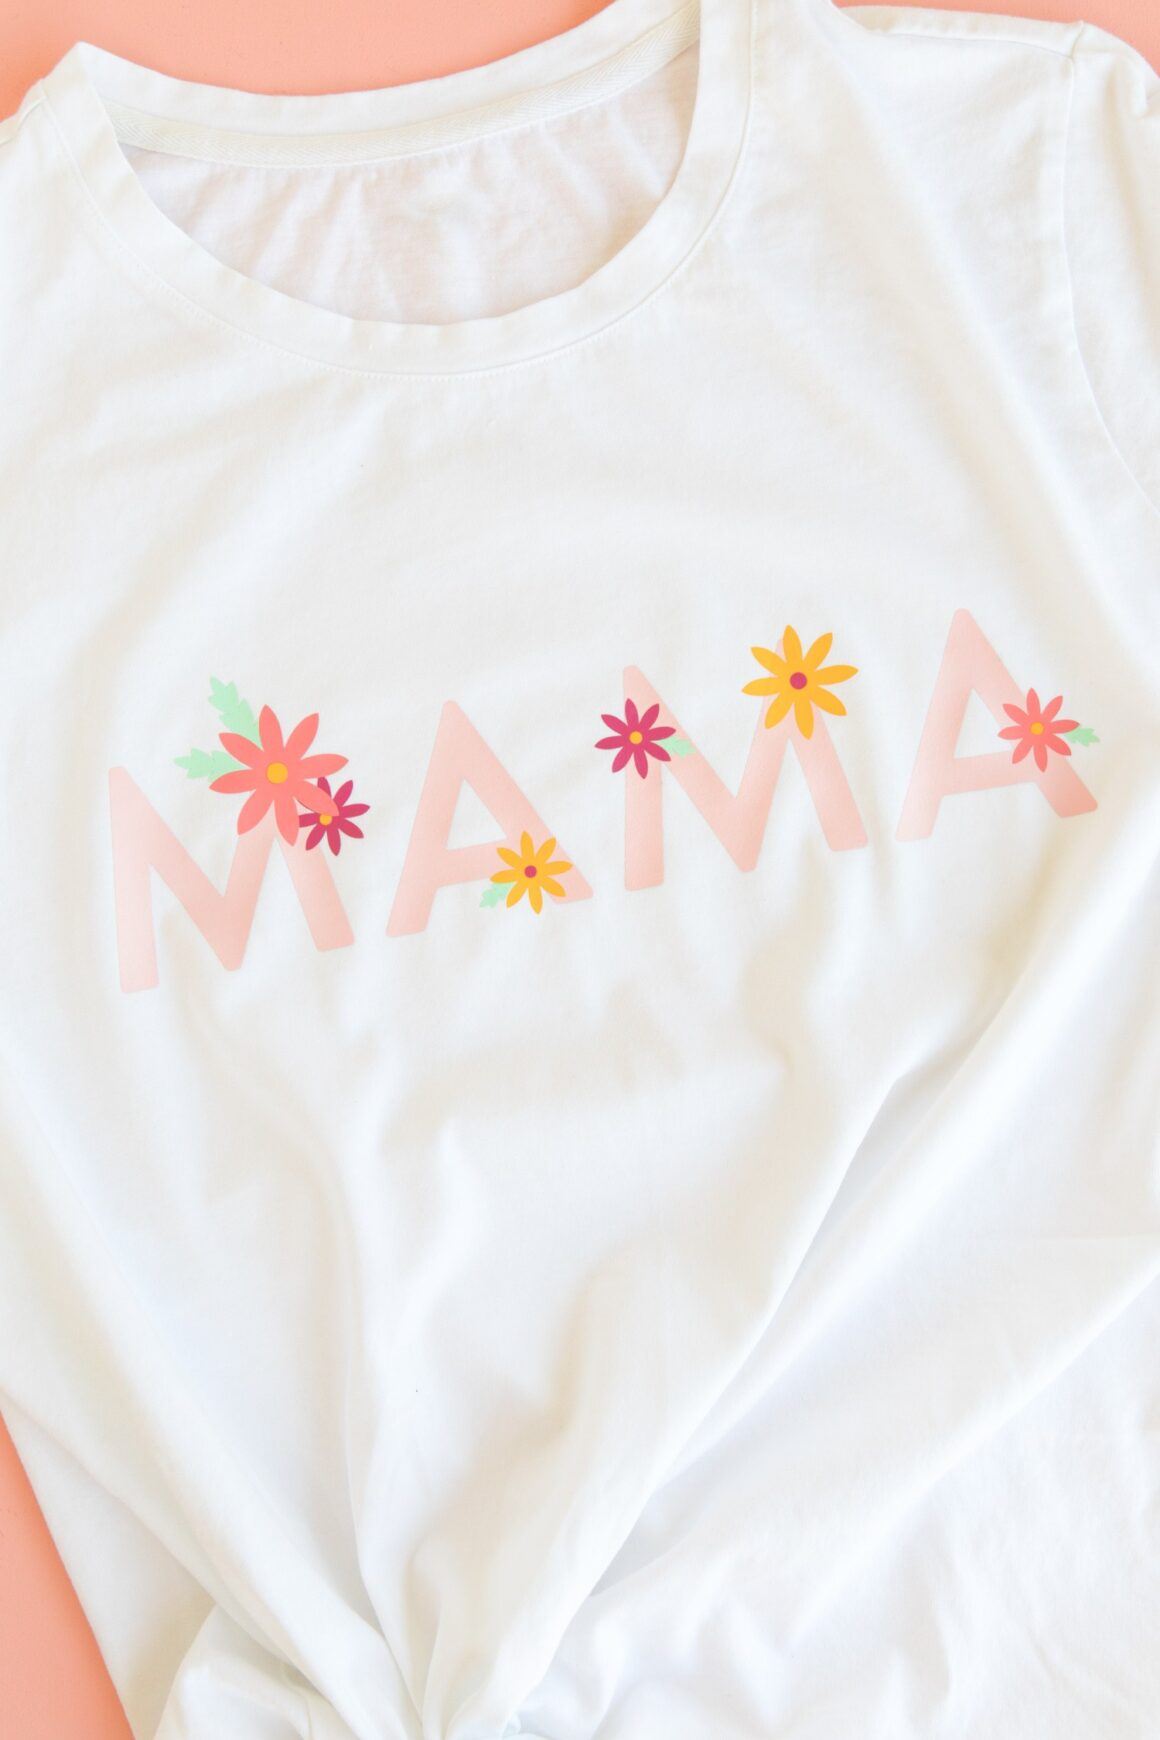 DIY Gifts for Mom: DIY Mama Shirt